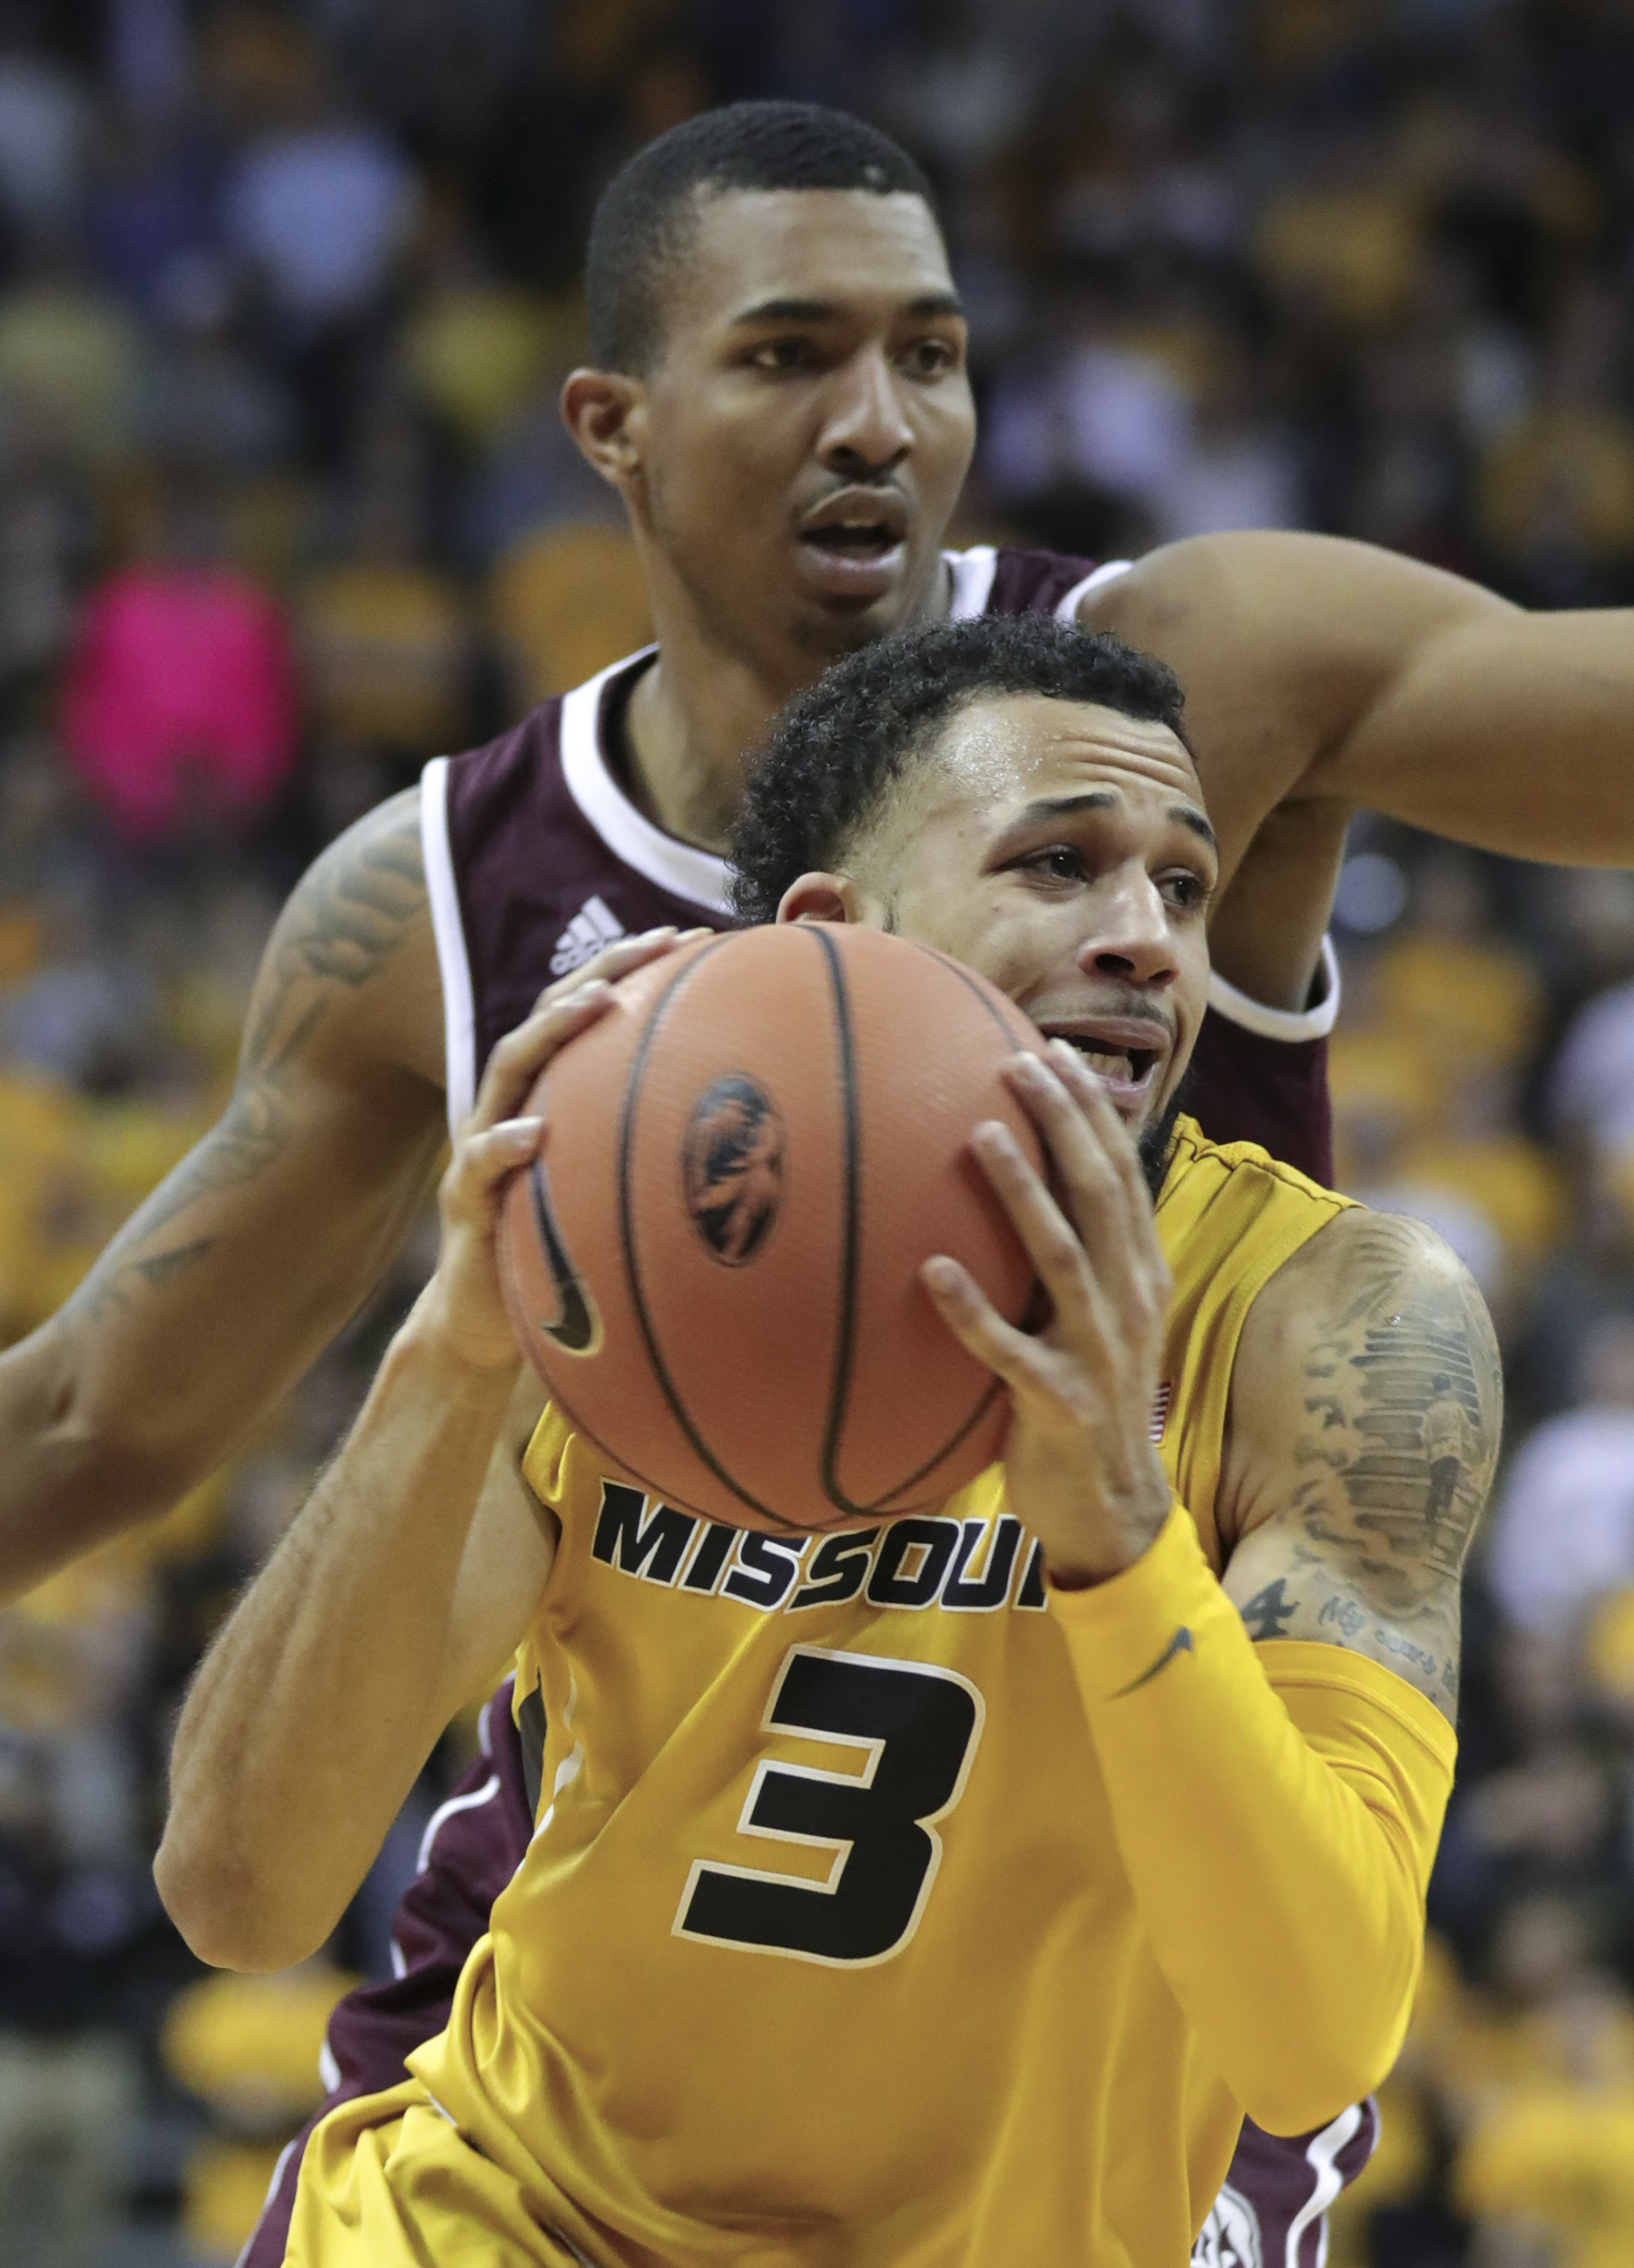 Kassius Robertson drives the ball while Xavian Stapleton chases during Missouri's 89-85 overtime victory over Mississippi State on Saturday, Feb. 10, 2018 at Mizzou Arena. Robertson scored a team-high 22 points.